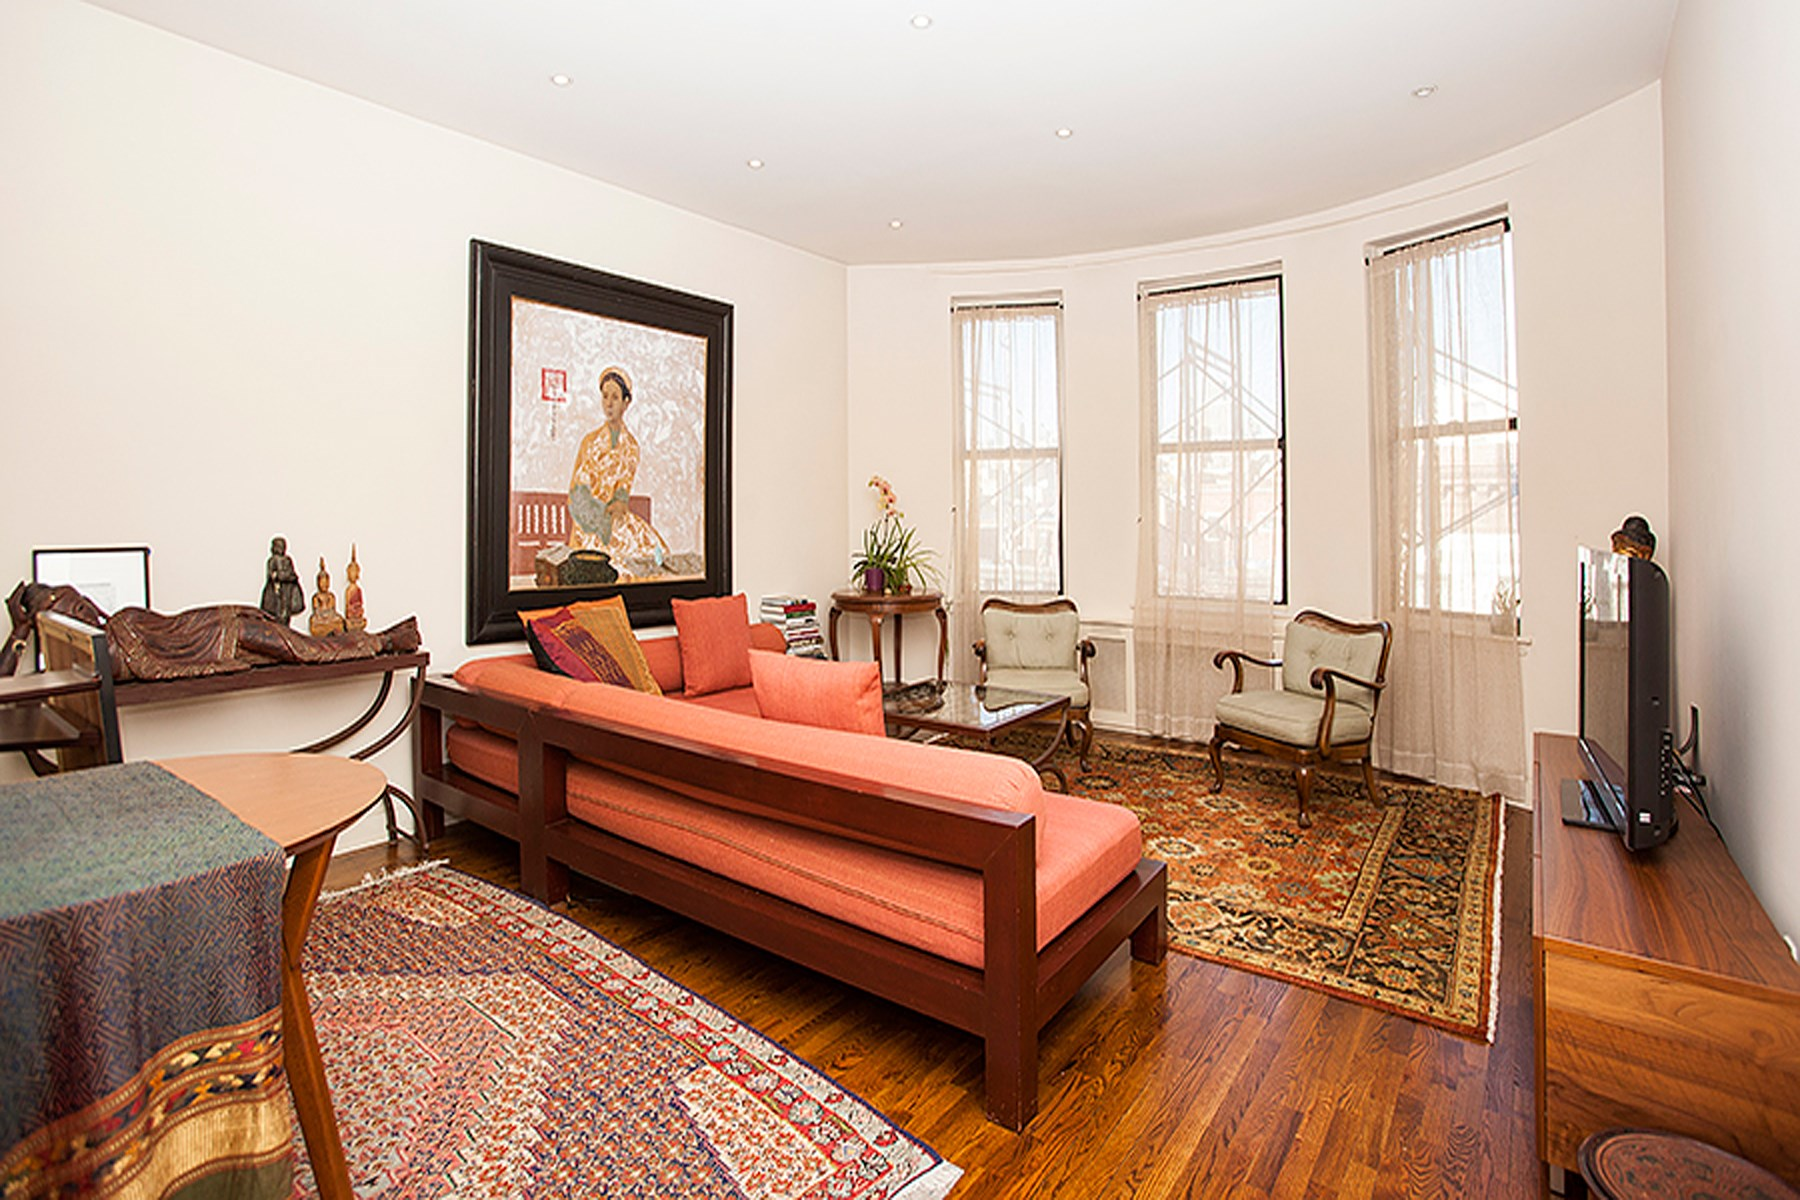 Co-op for Sale at 102 West 80th Street, Apt. 61 102 West 80th Street Apt. 61 Upper West Side, New York, New York 10025 United States